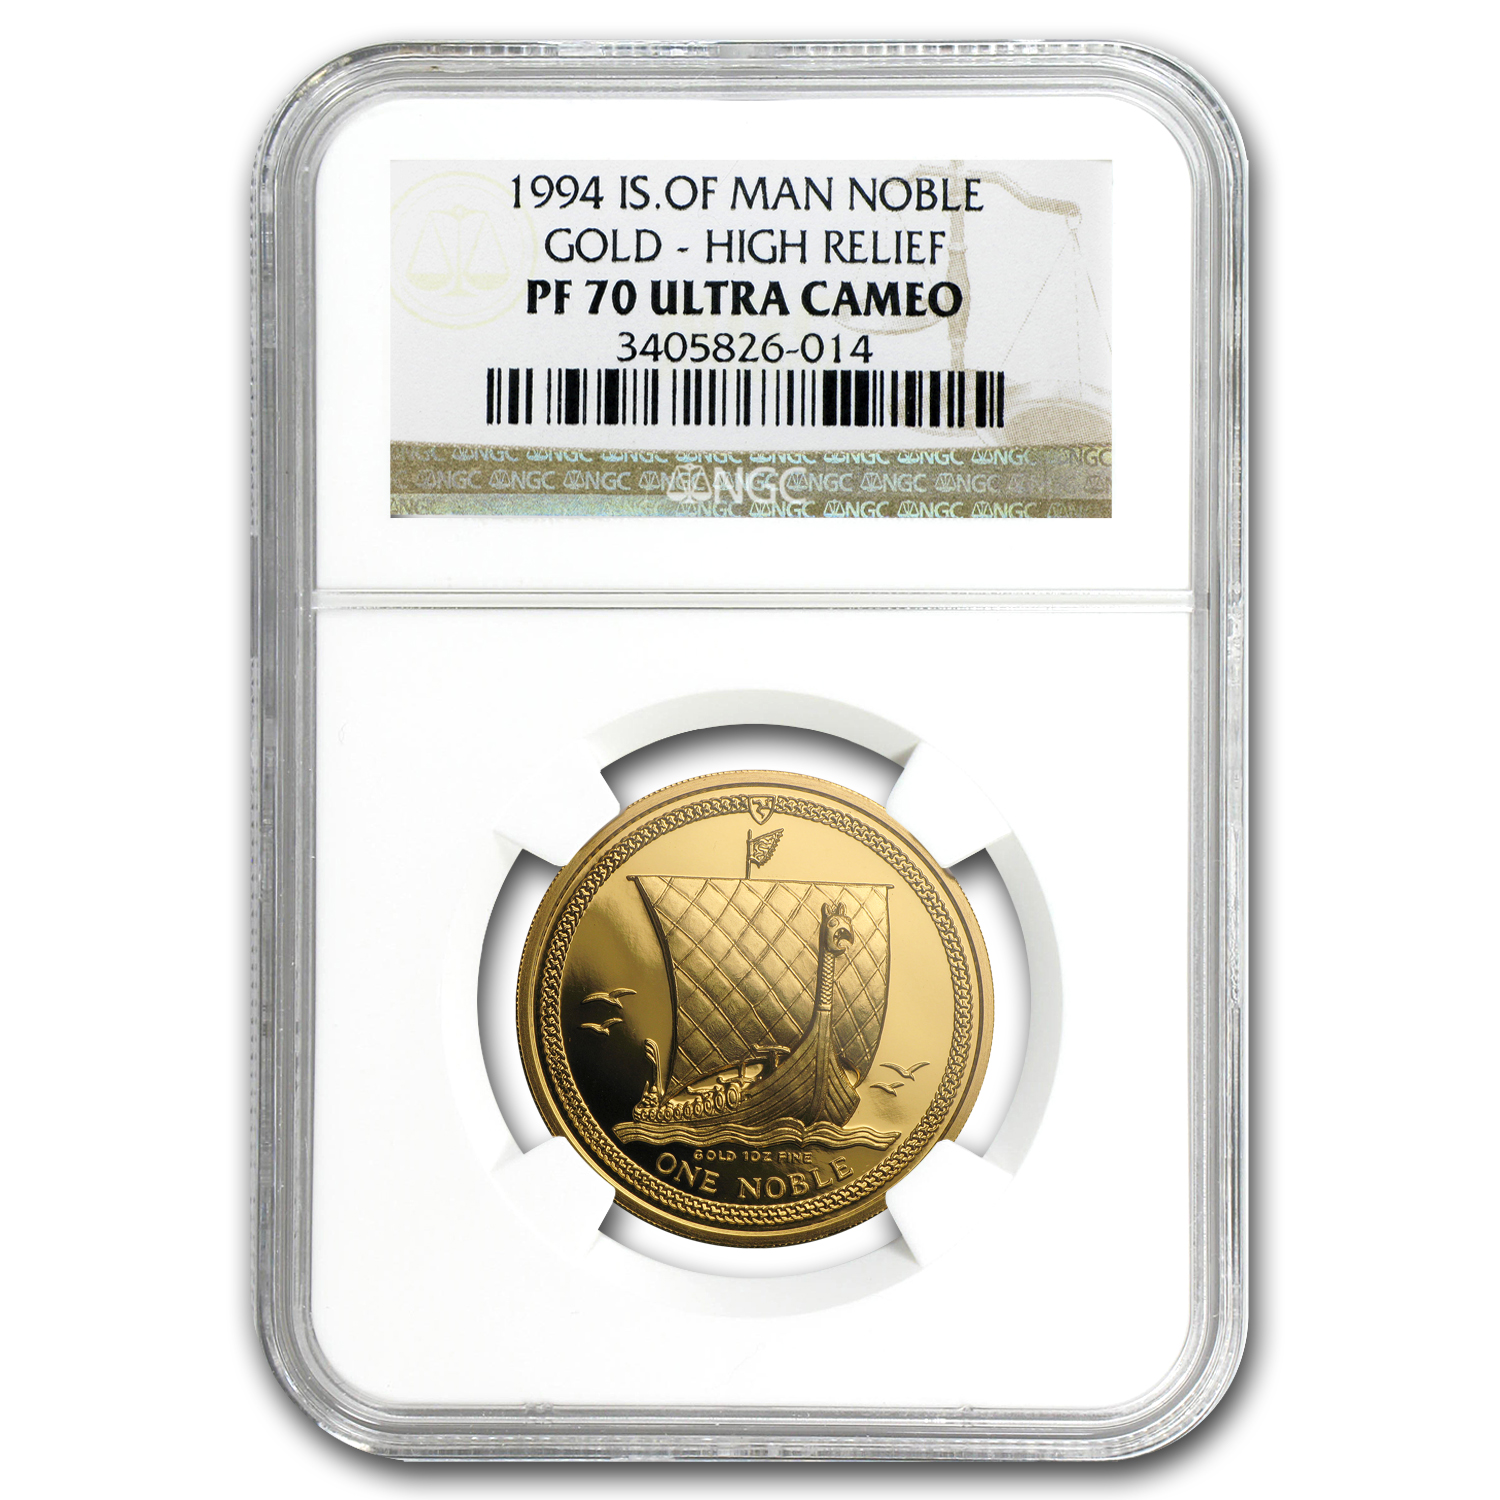 1994 Isle of Man 1 oz Proof Gold Noble High Relief PF-70 NGC